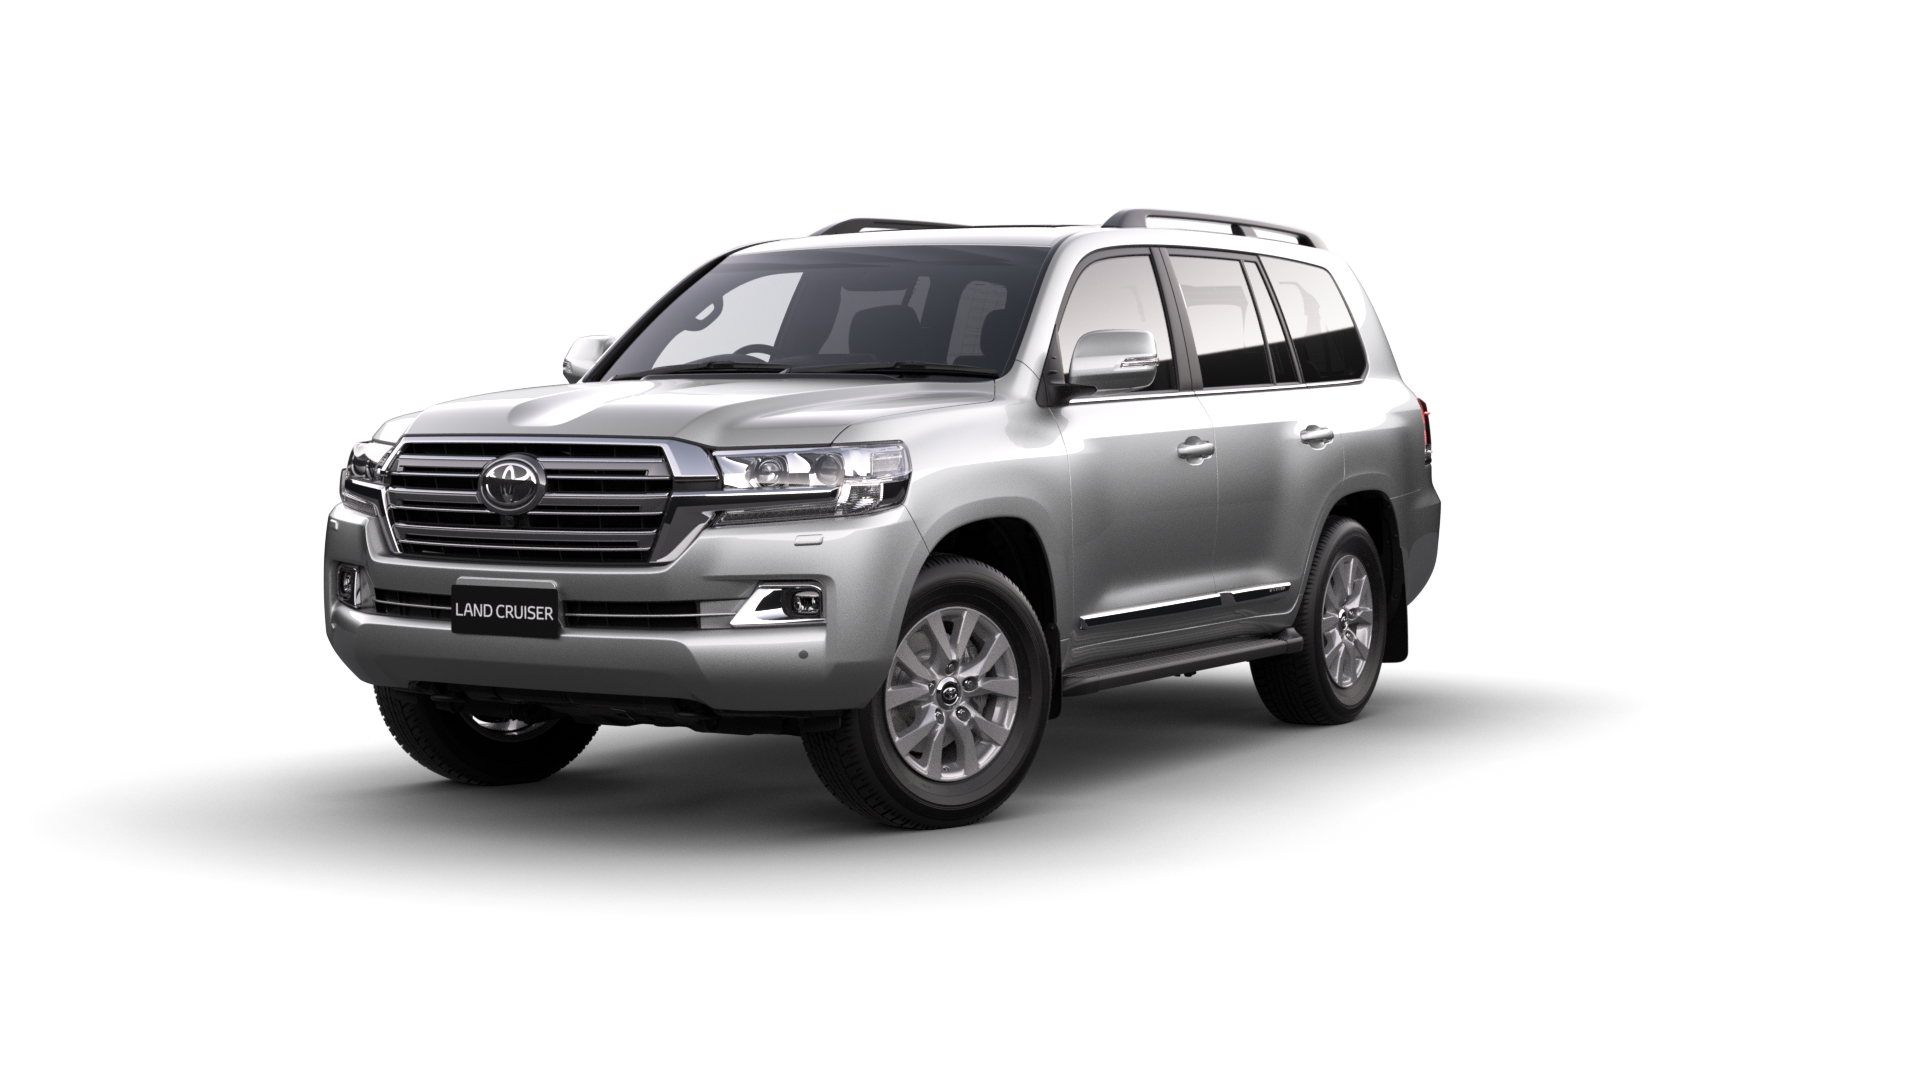 Toyota Land Cruiser 100s (98-07)